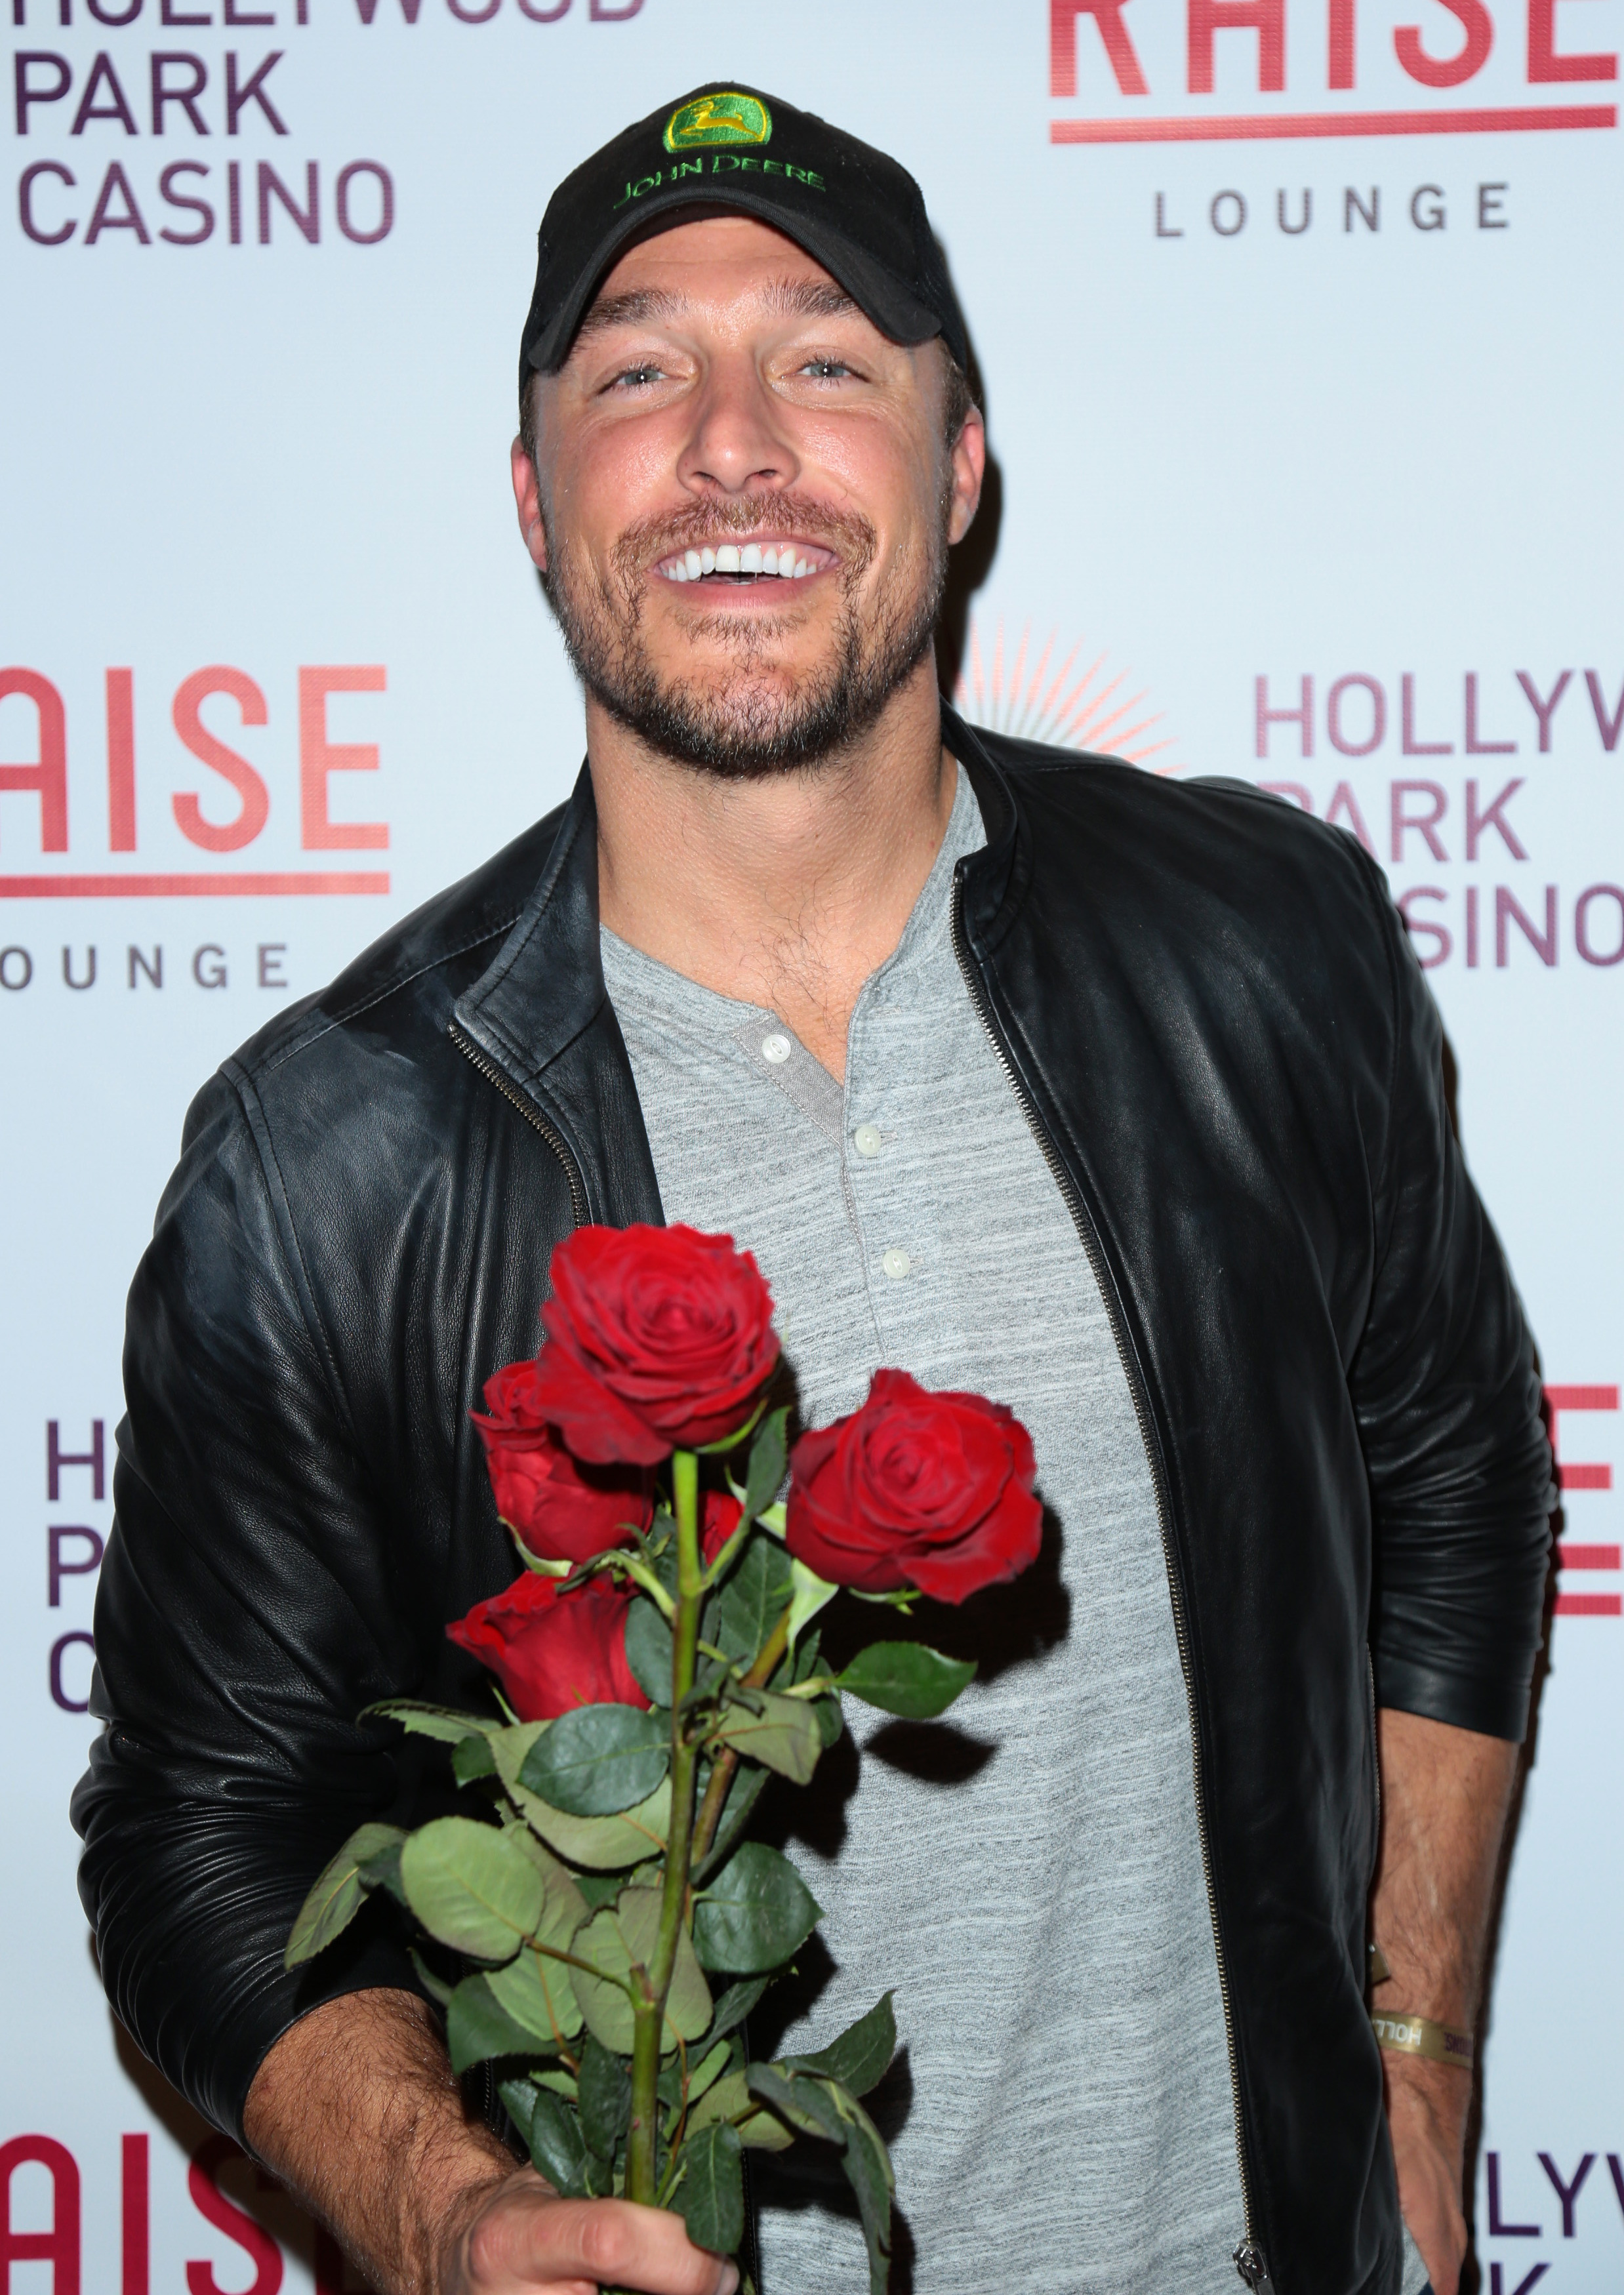 The Bachelor season finale viewing party at Hollywood Park Casino  Featuring: Chris Soules Where: Los Angeles, California, United States When: 13 Mar 2017 Credit: Guillermo Proano/WENN.com